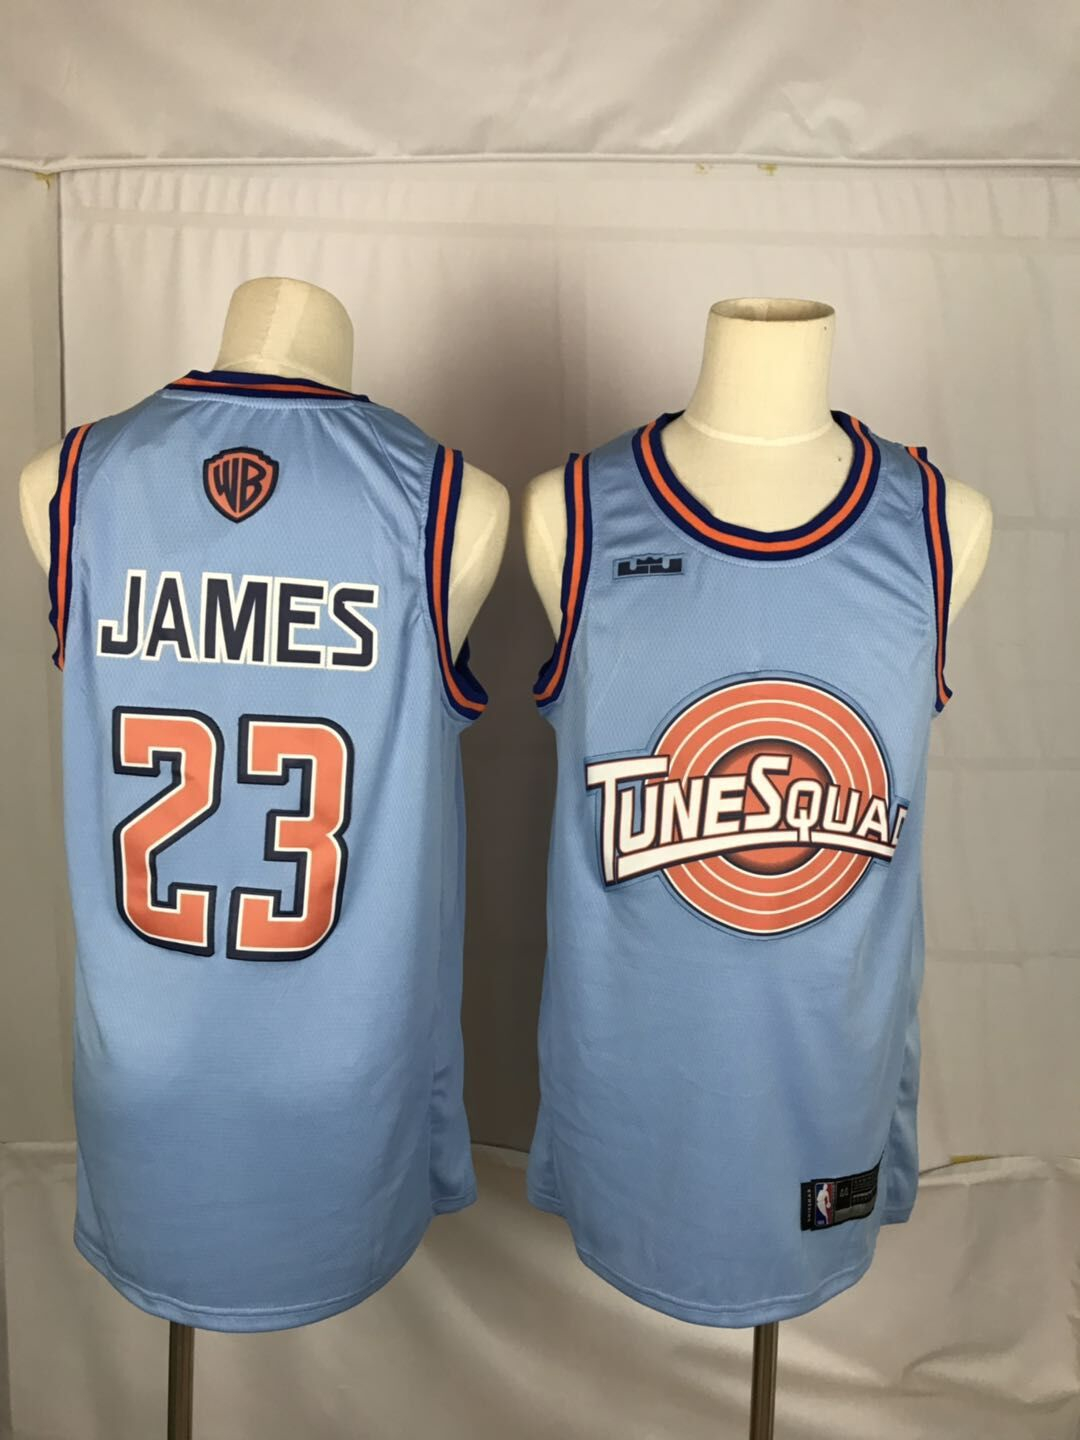 Tune Squad 23 Lebron James Blue Stitched Movie Basketball Jersey